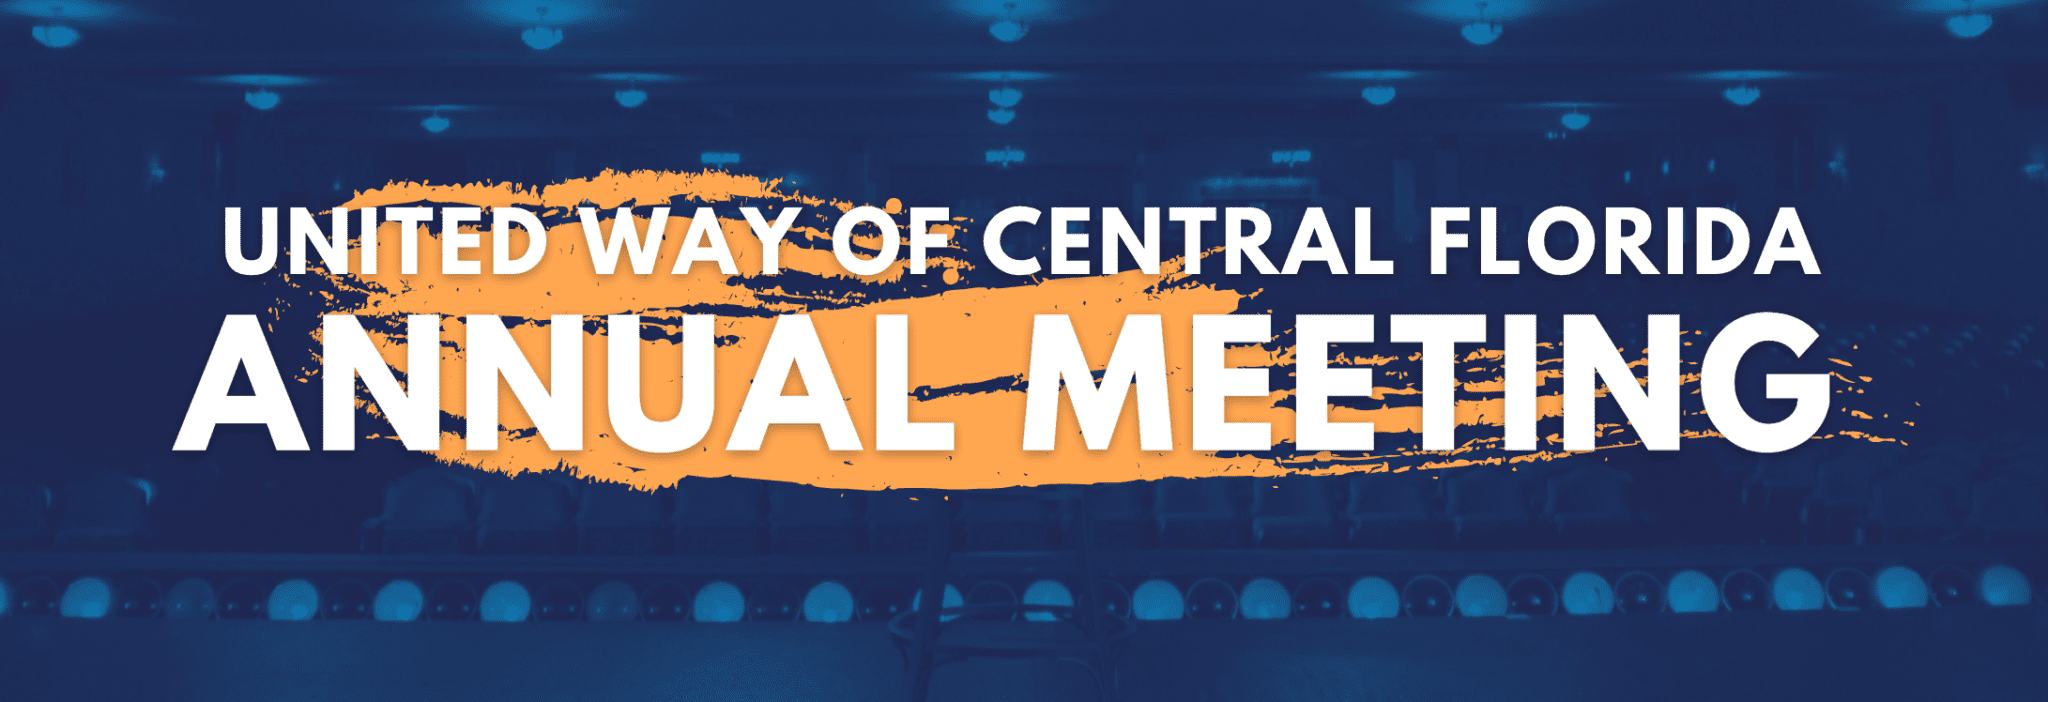 United Way of Central Florida Annual Meeting